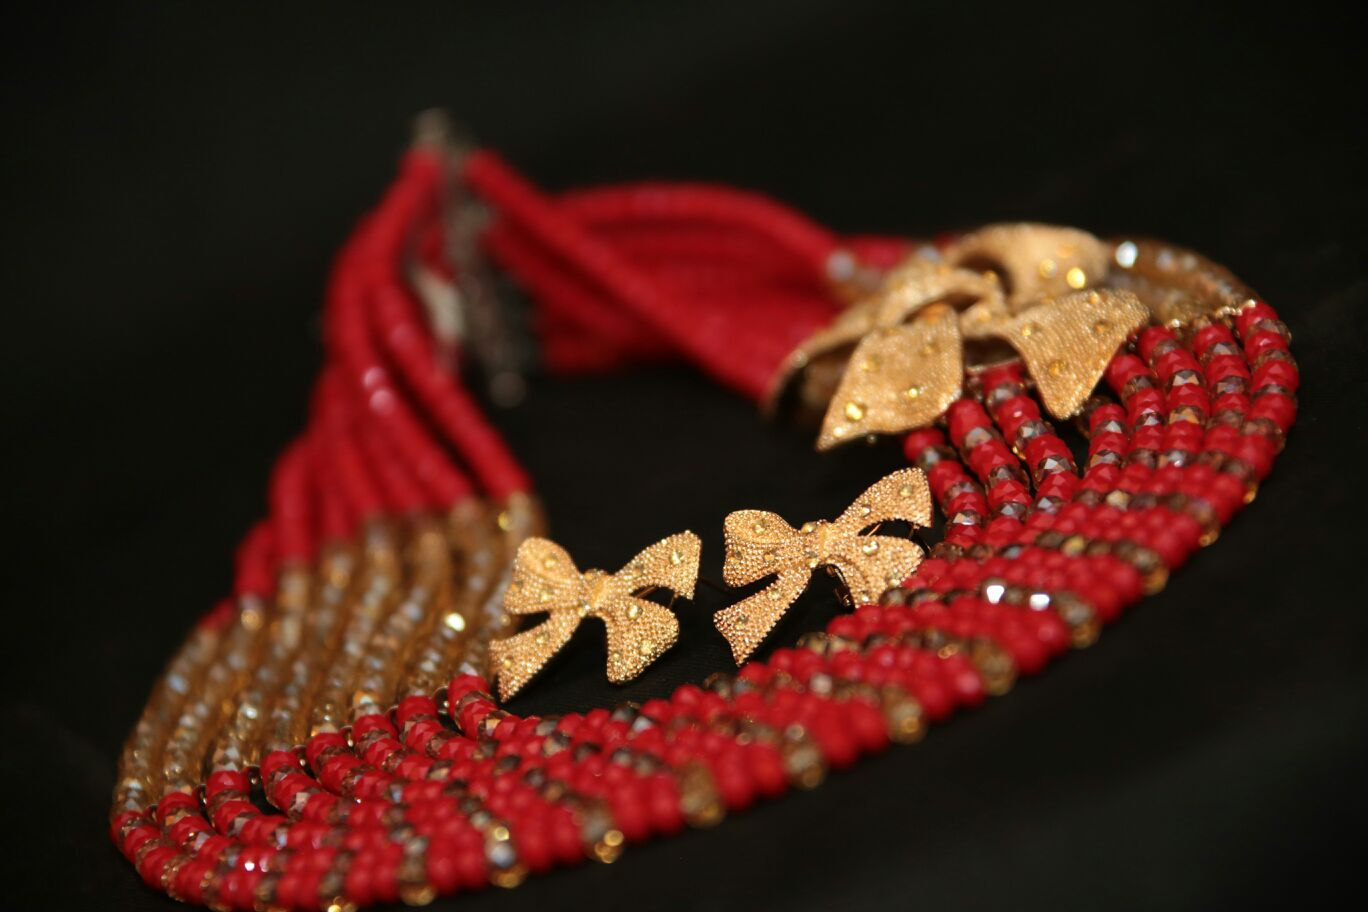 A passion for beads is turning into a recognisable brand.